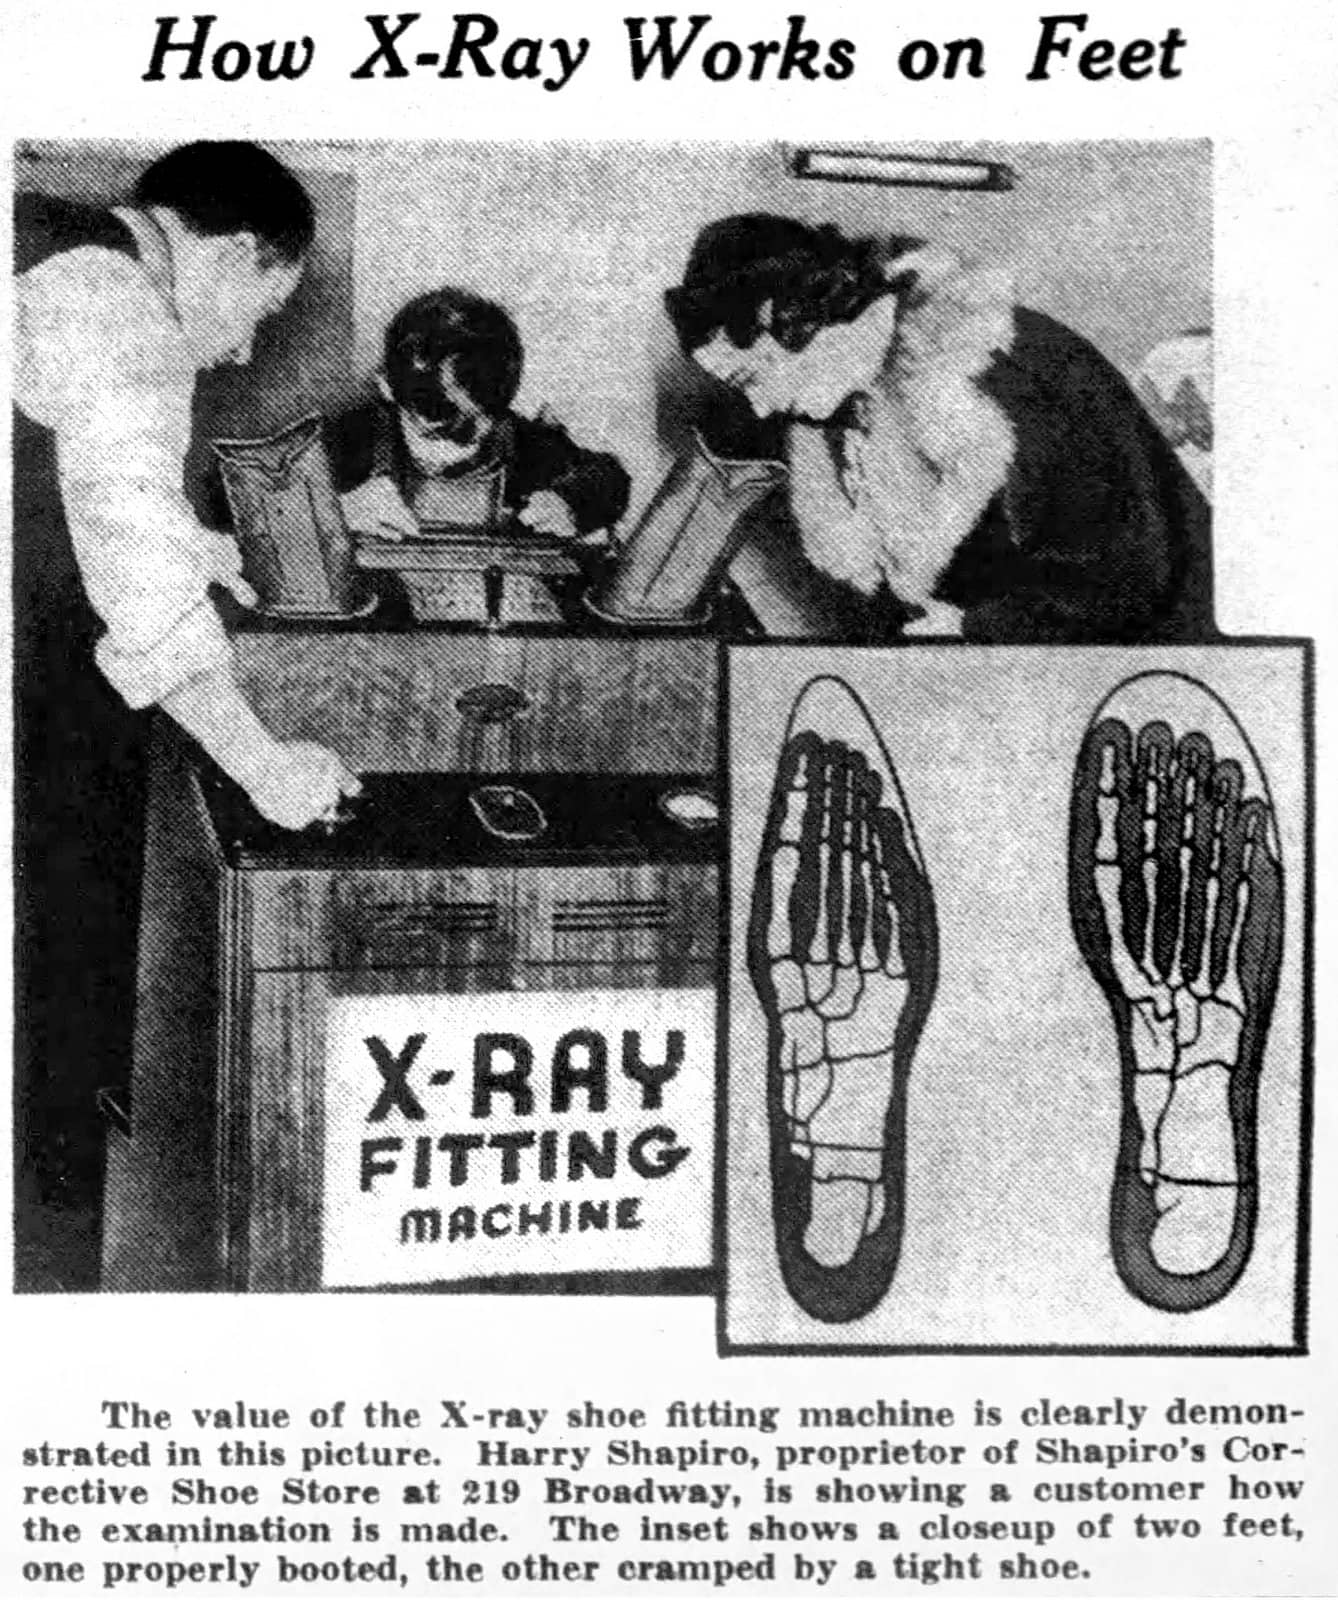 How X-ray works on feet (1940)